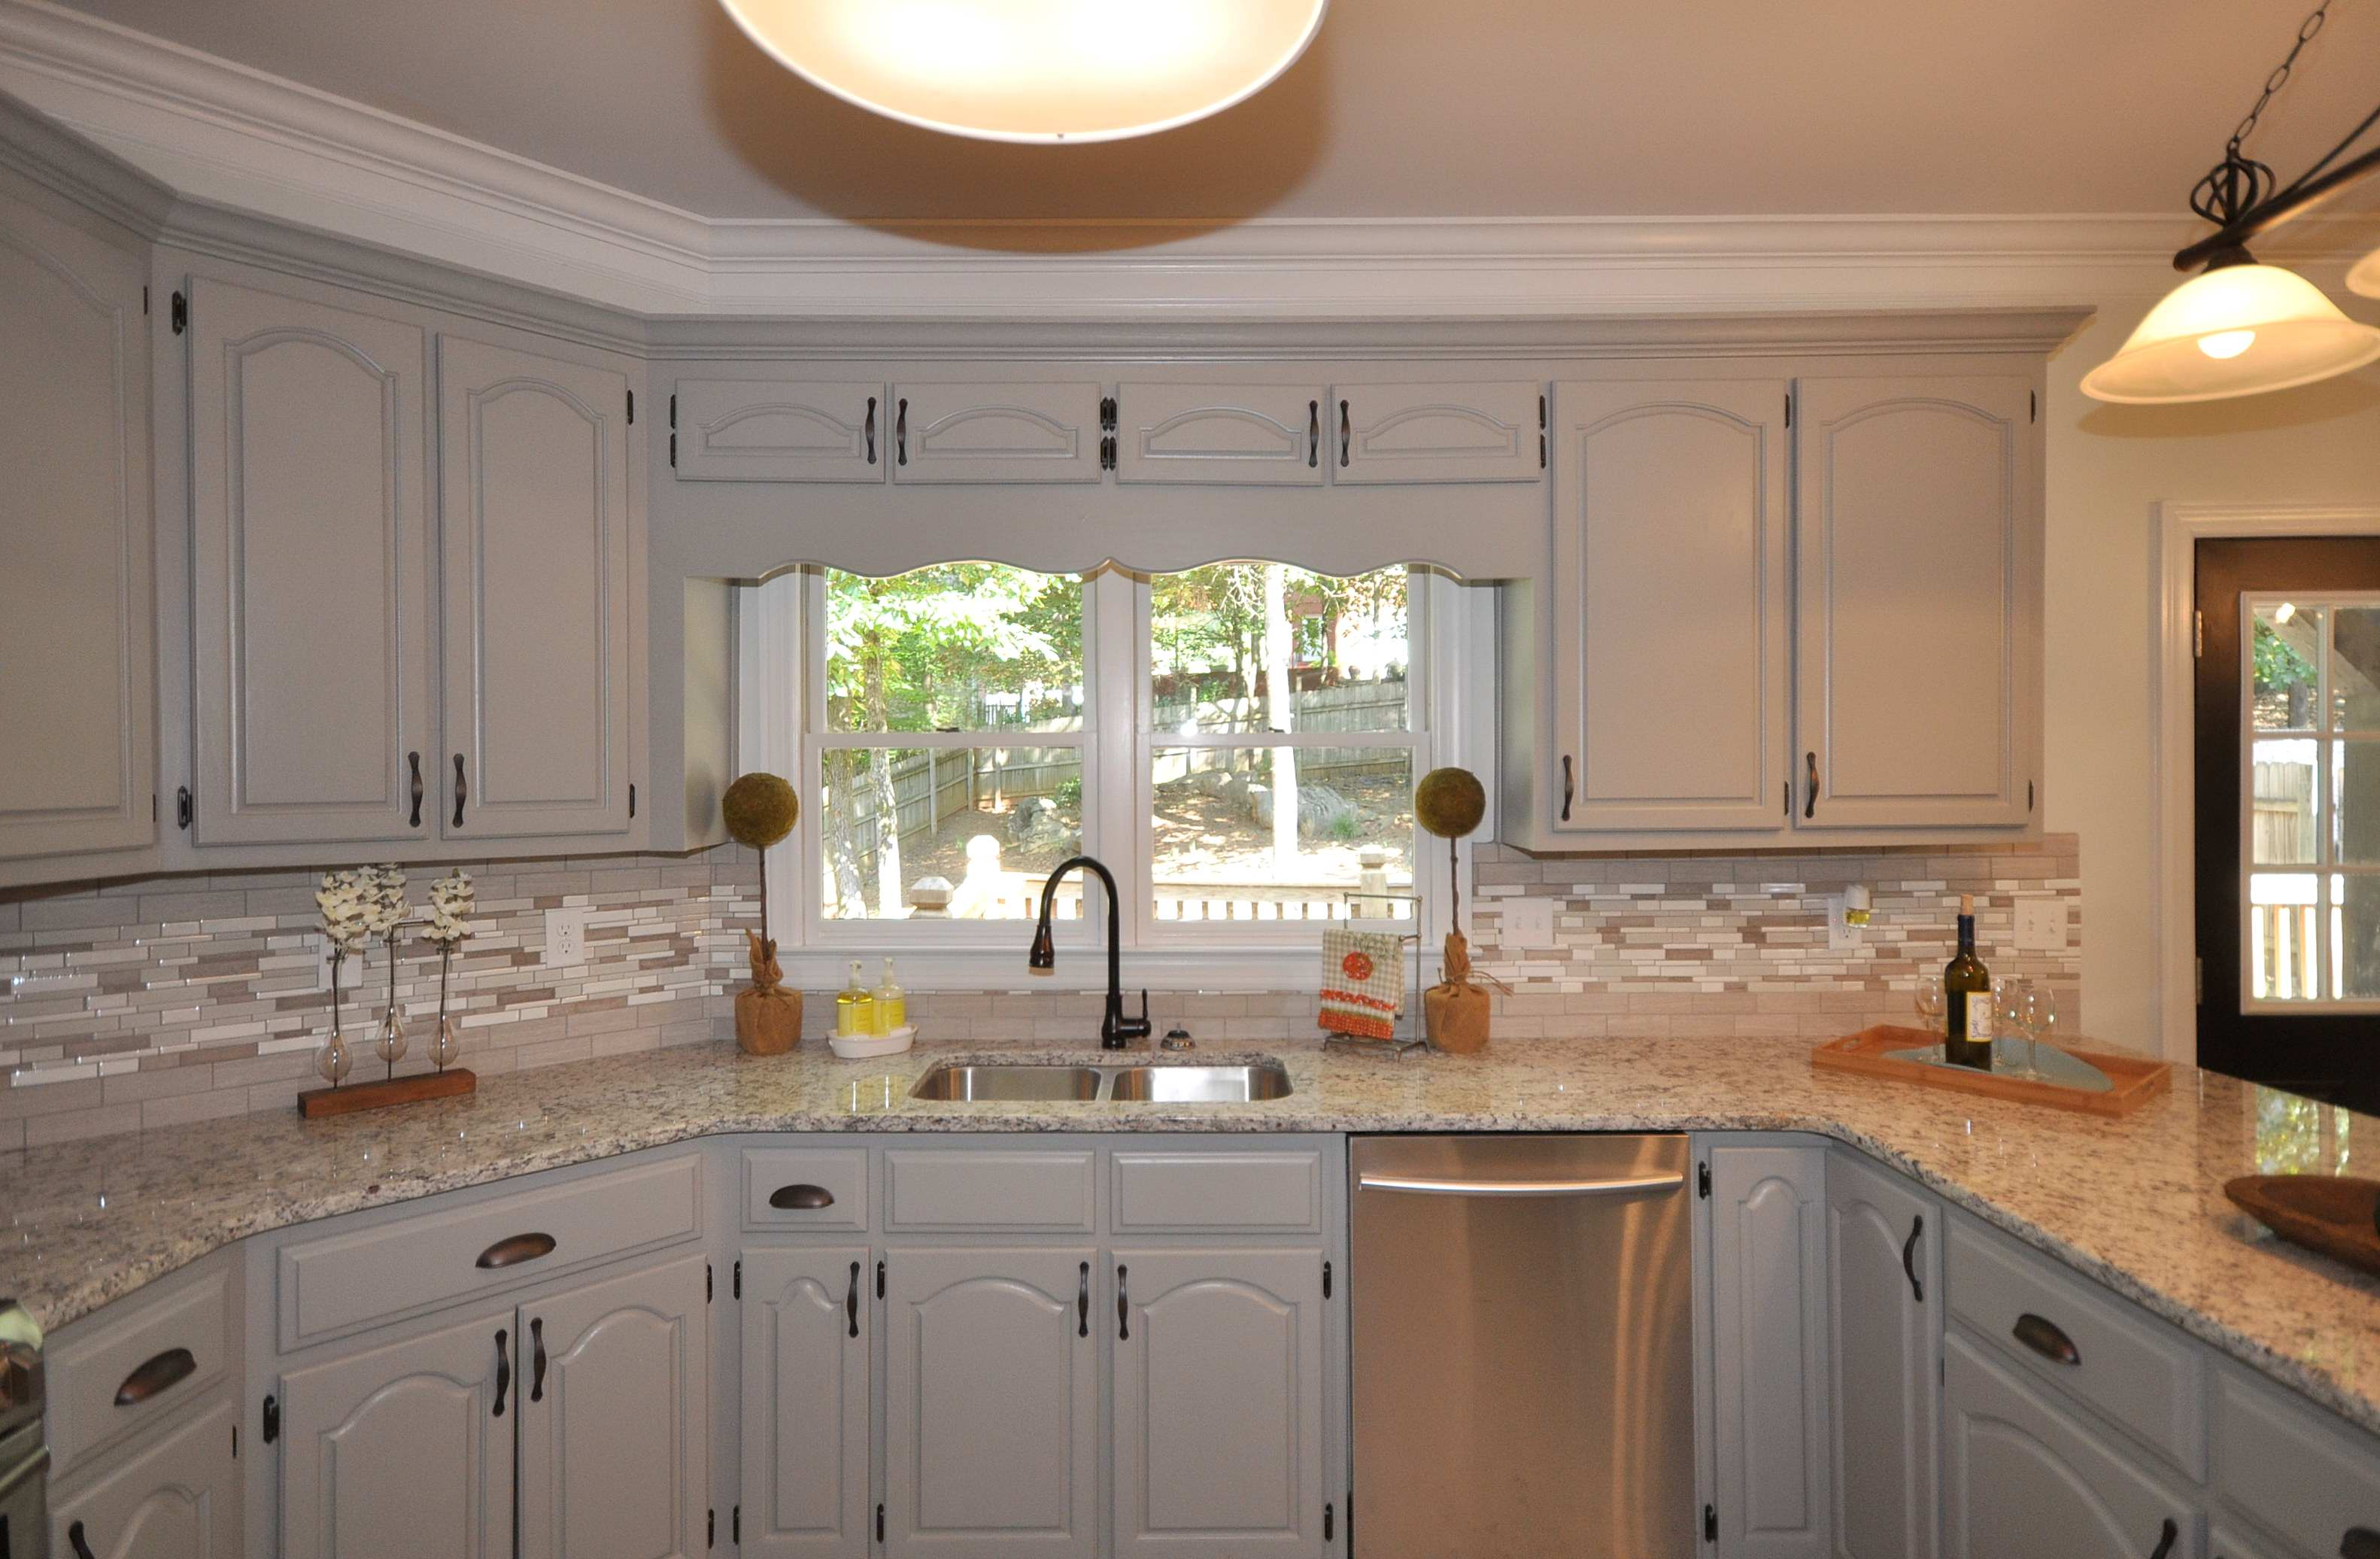 paintedcabinets kitchen cabinet updates Updates include Painting the kitchen cabinets Hazy Stratus by Valspar these cabinets were in great shape and there were a TON OF THEM so replacing